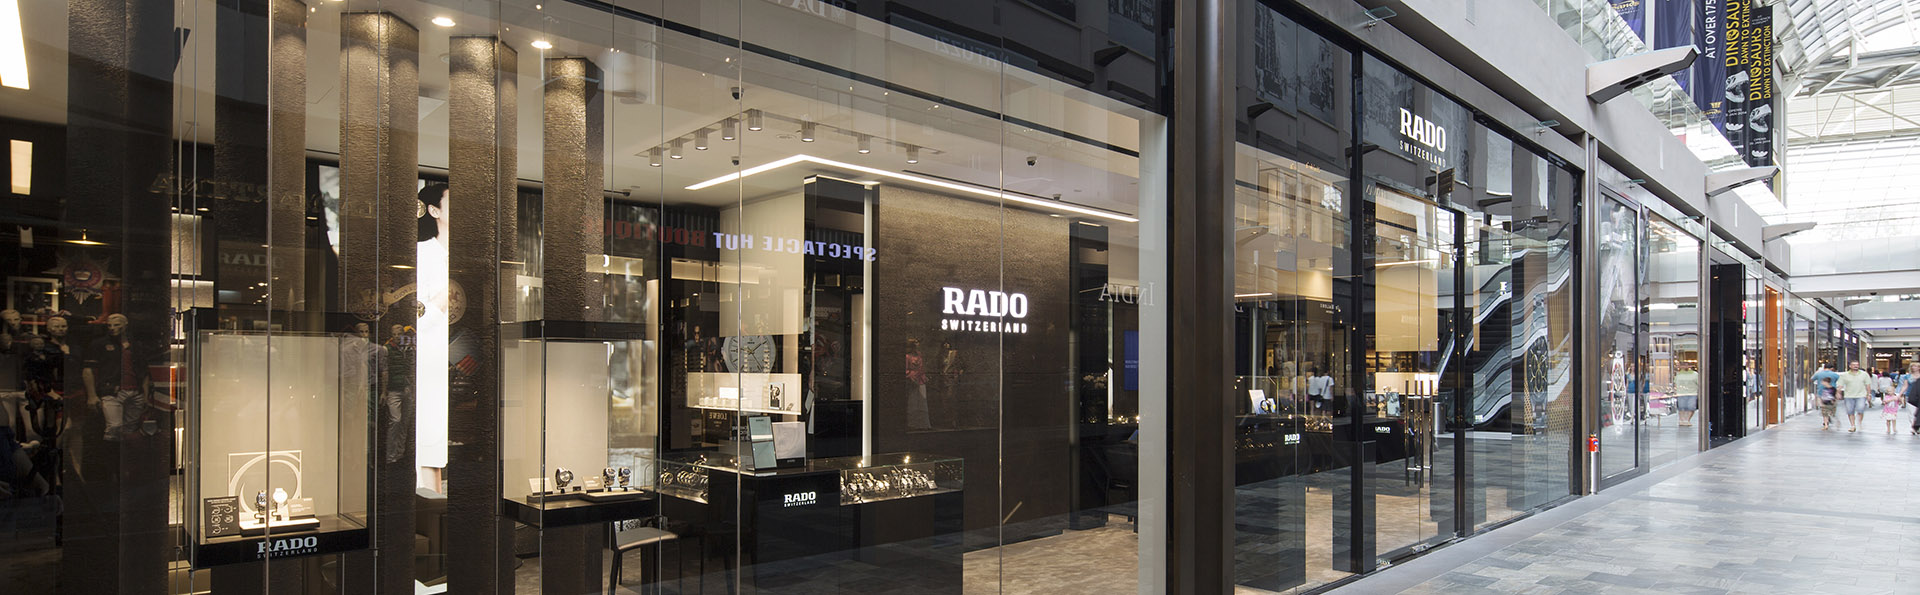 Rado Watches in Marina Bay Sands, Singapore Shopping